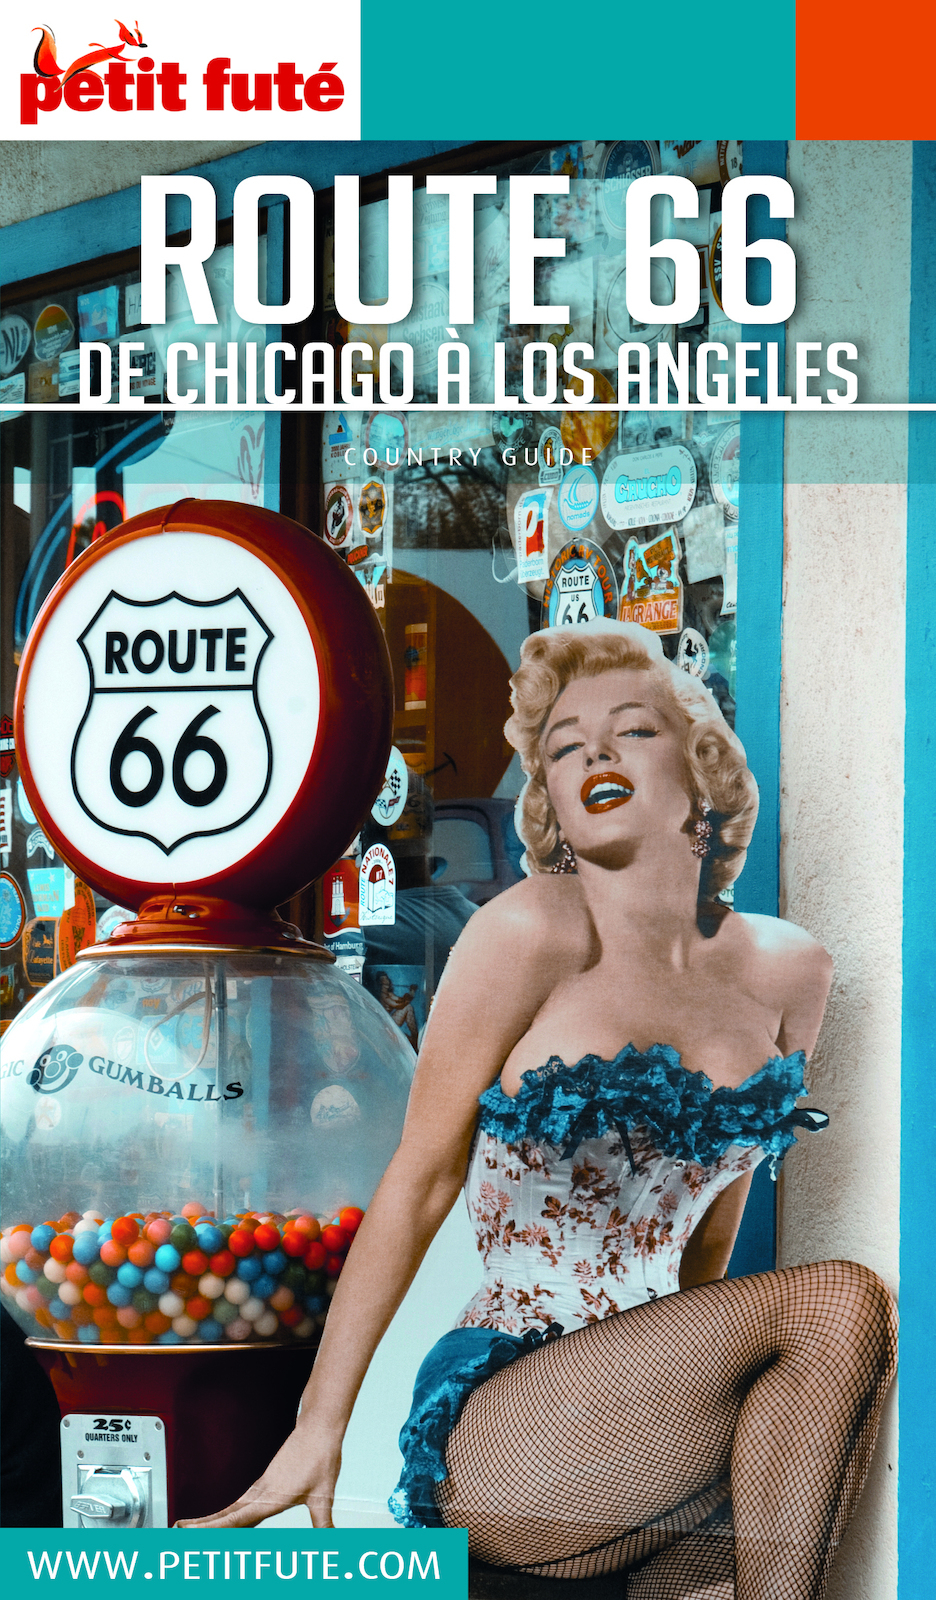 ROUTE 66 US 2018/2019 Petit Futé | Auzias, Dominique